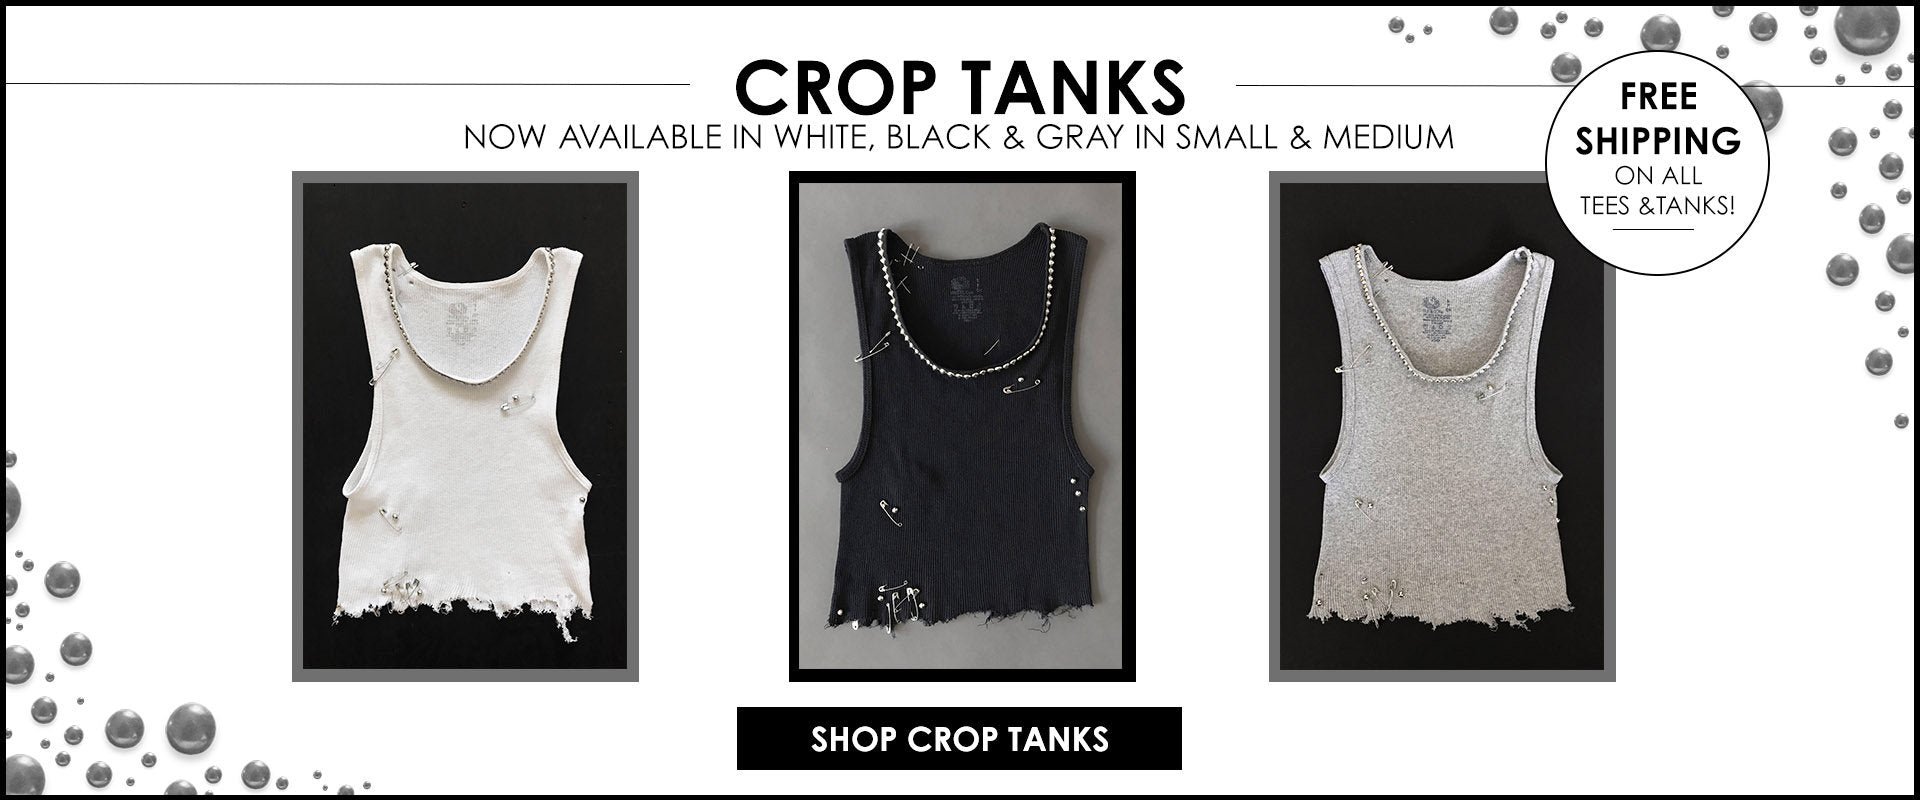 One More Chance Vintage - Badass Vintage & Handmade Studded Rock N Roll Cutoff Distressed Tank Tops